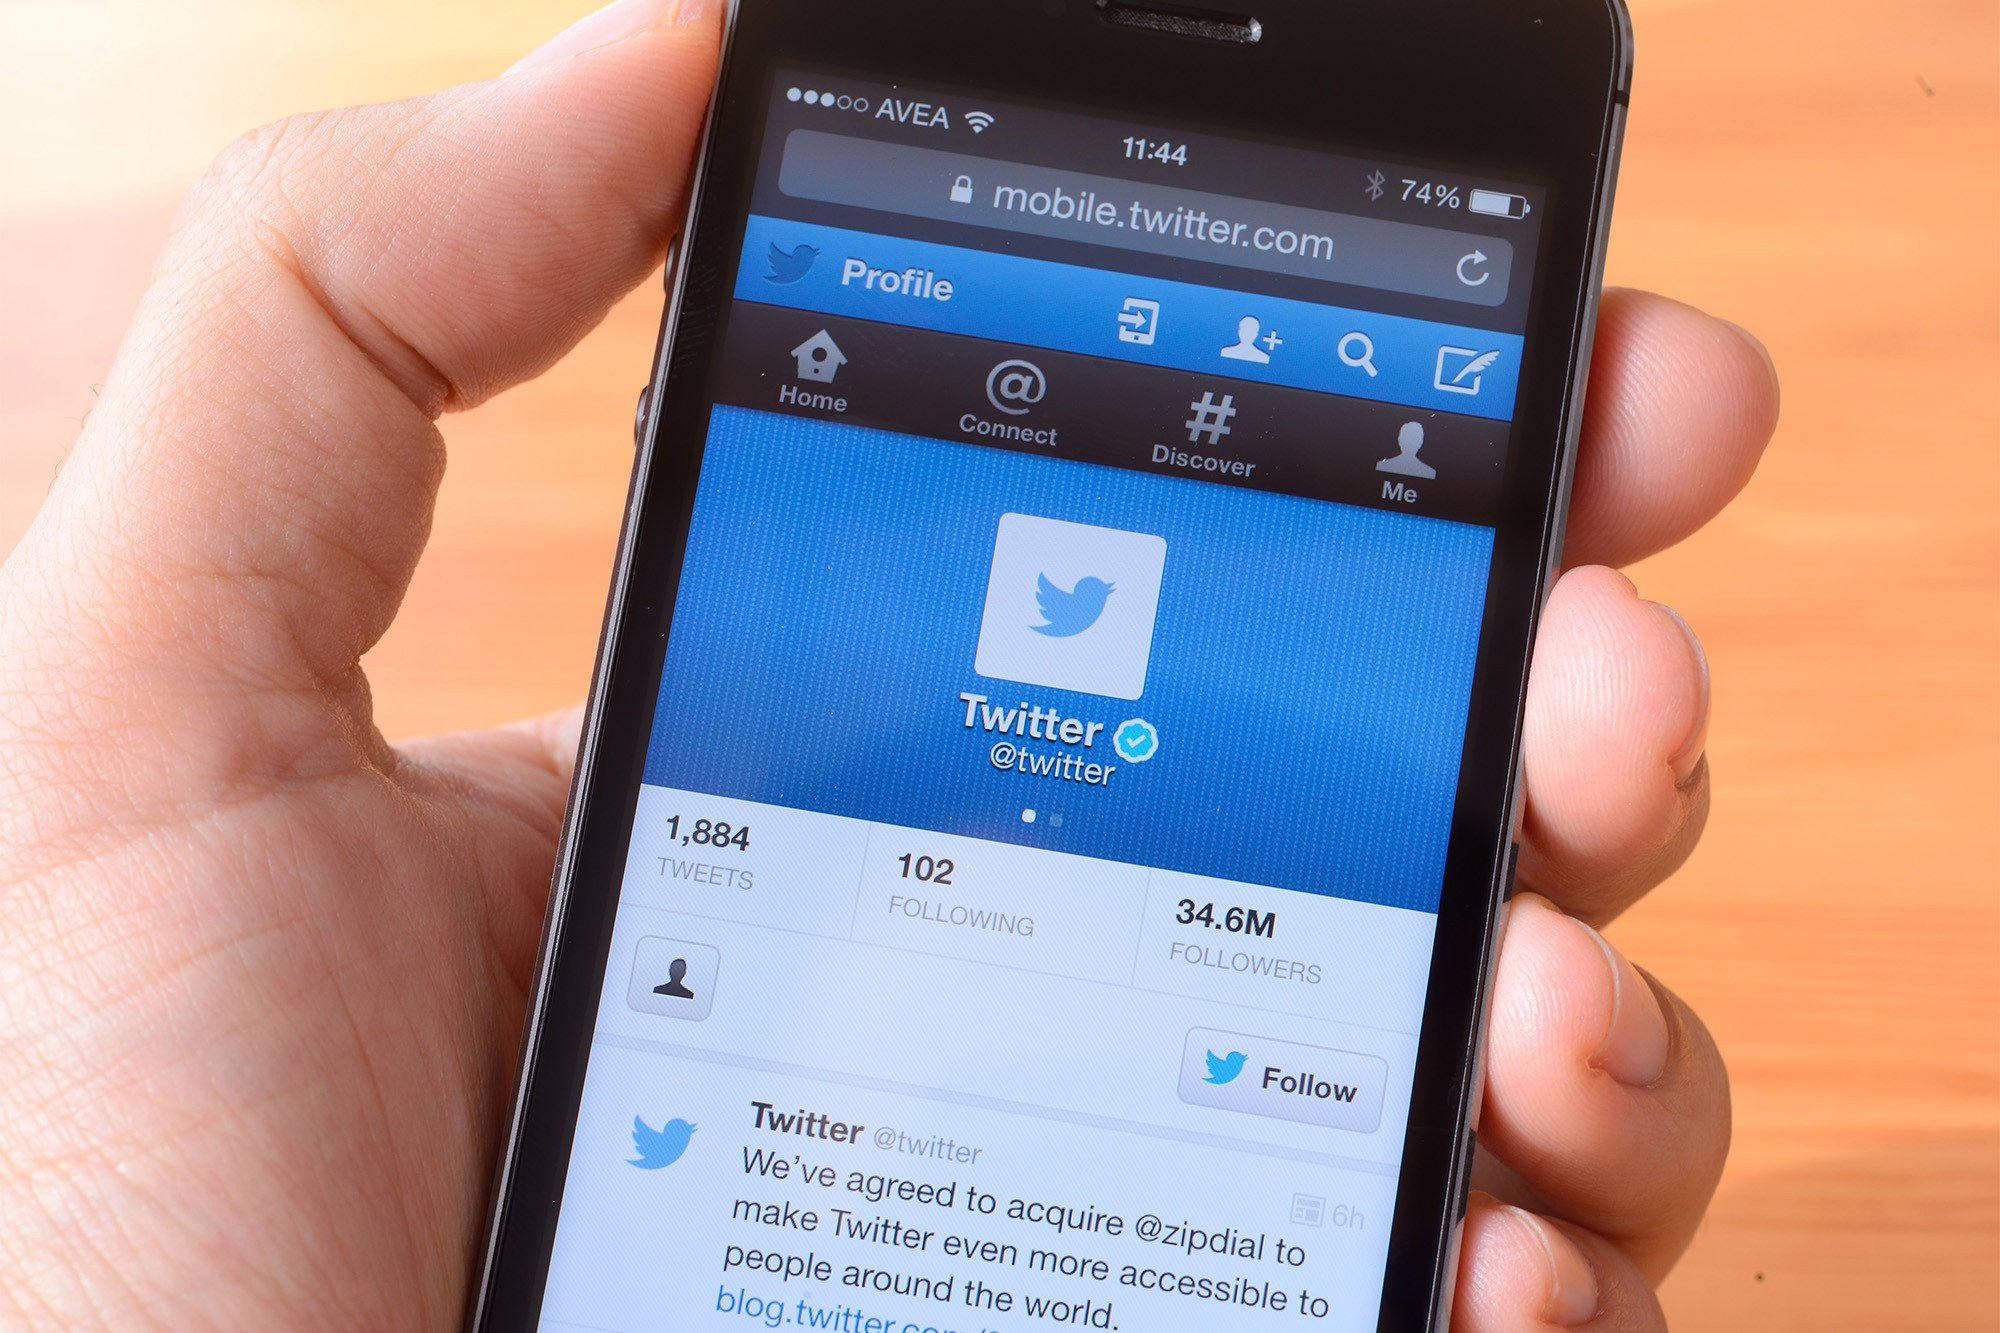 Twitter swears it's not reading your private messages